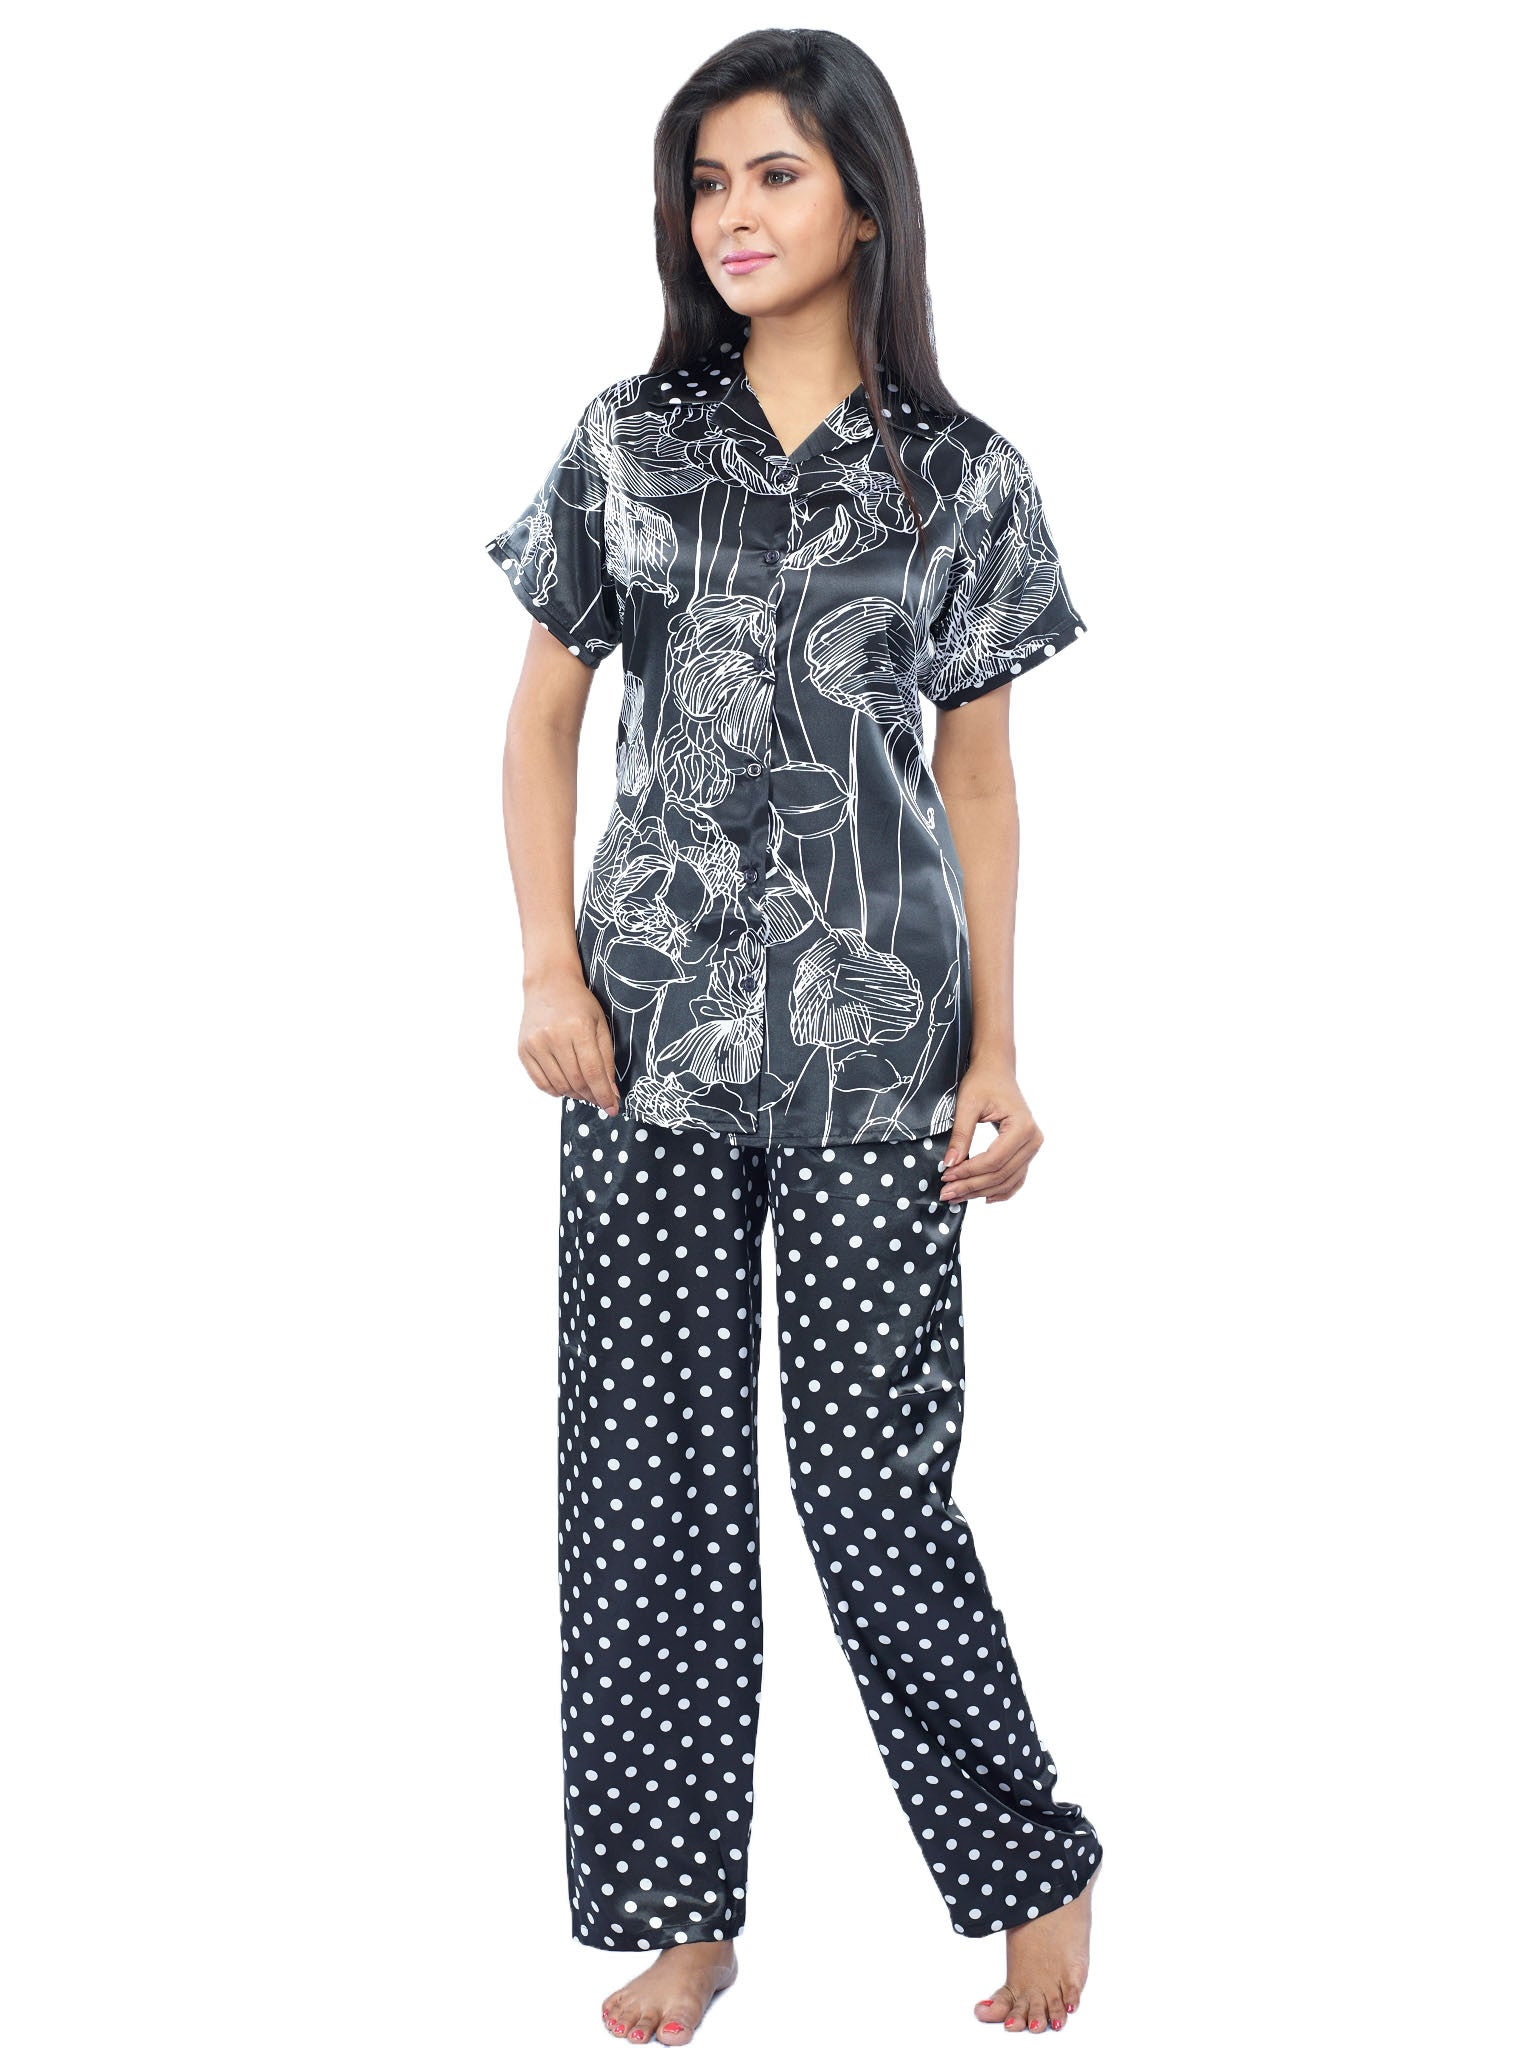 Juliet JRB9090 Women s Pyjama Night Suit 913c3bf01